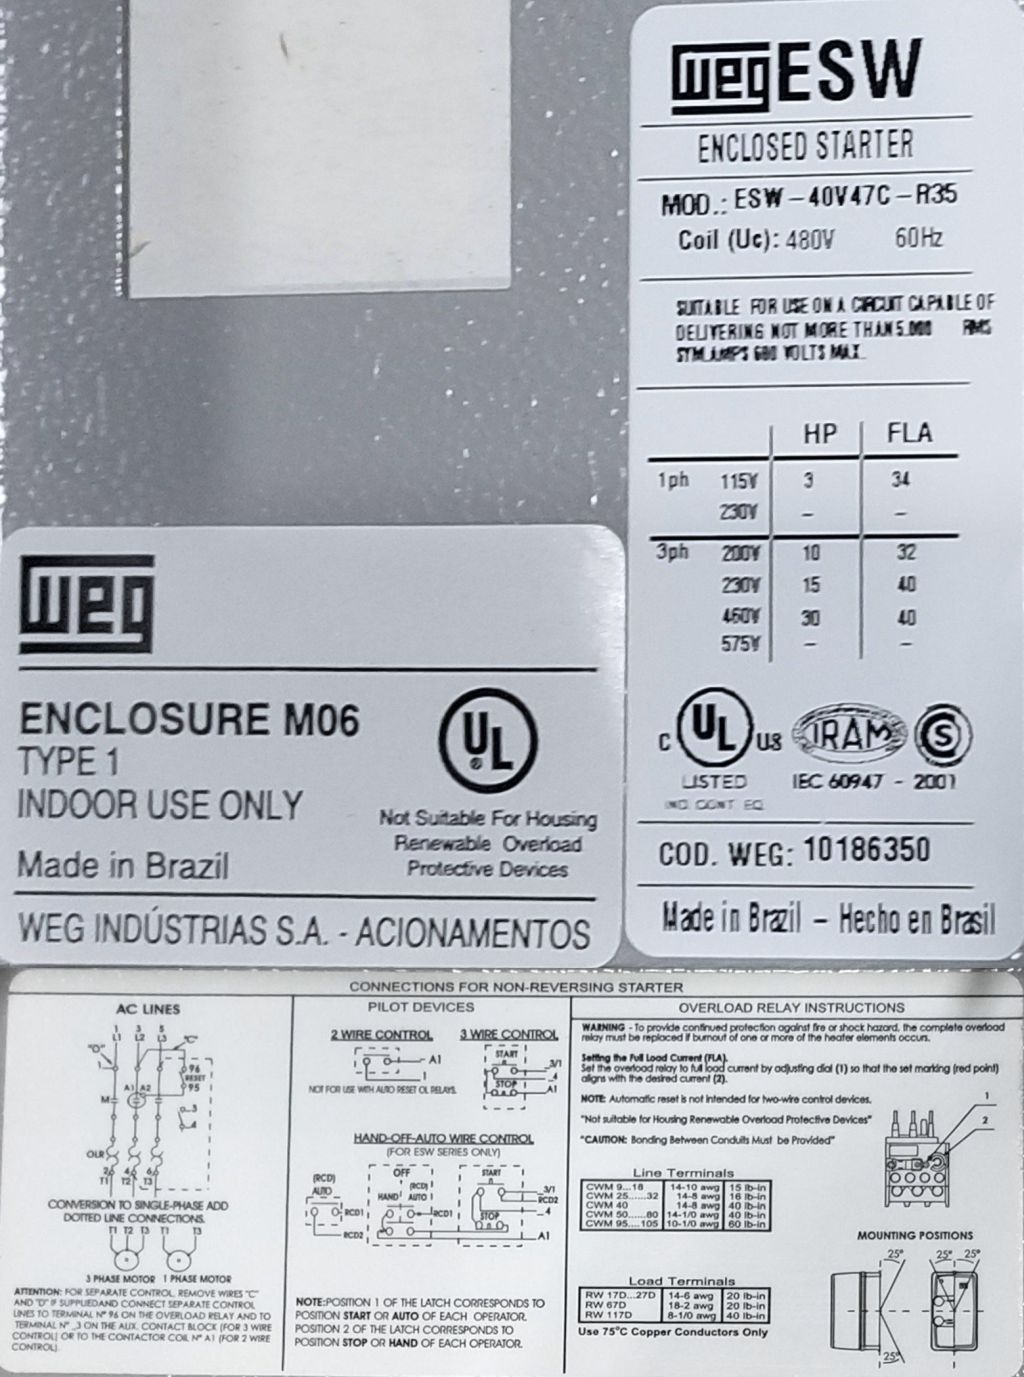 WEG, ESW-40V47C-R35, 25 HP, 460 Volts, 3 Phase, NEMA 1, Electric ...